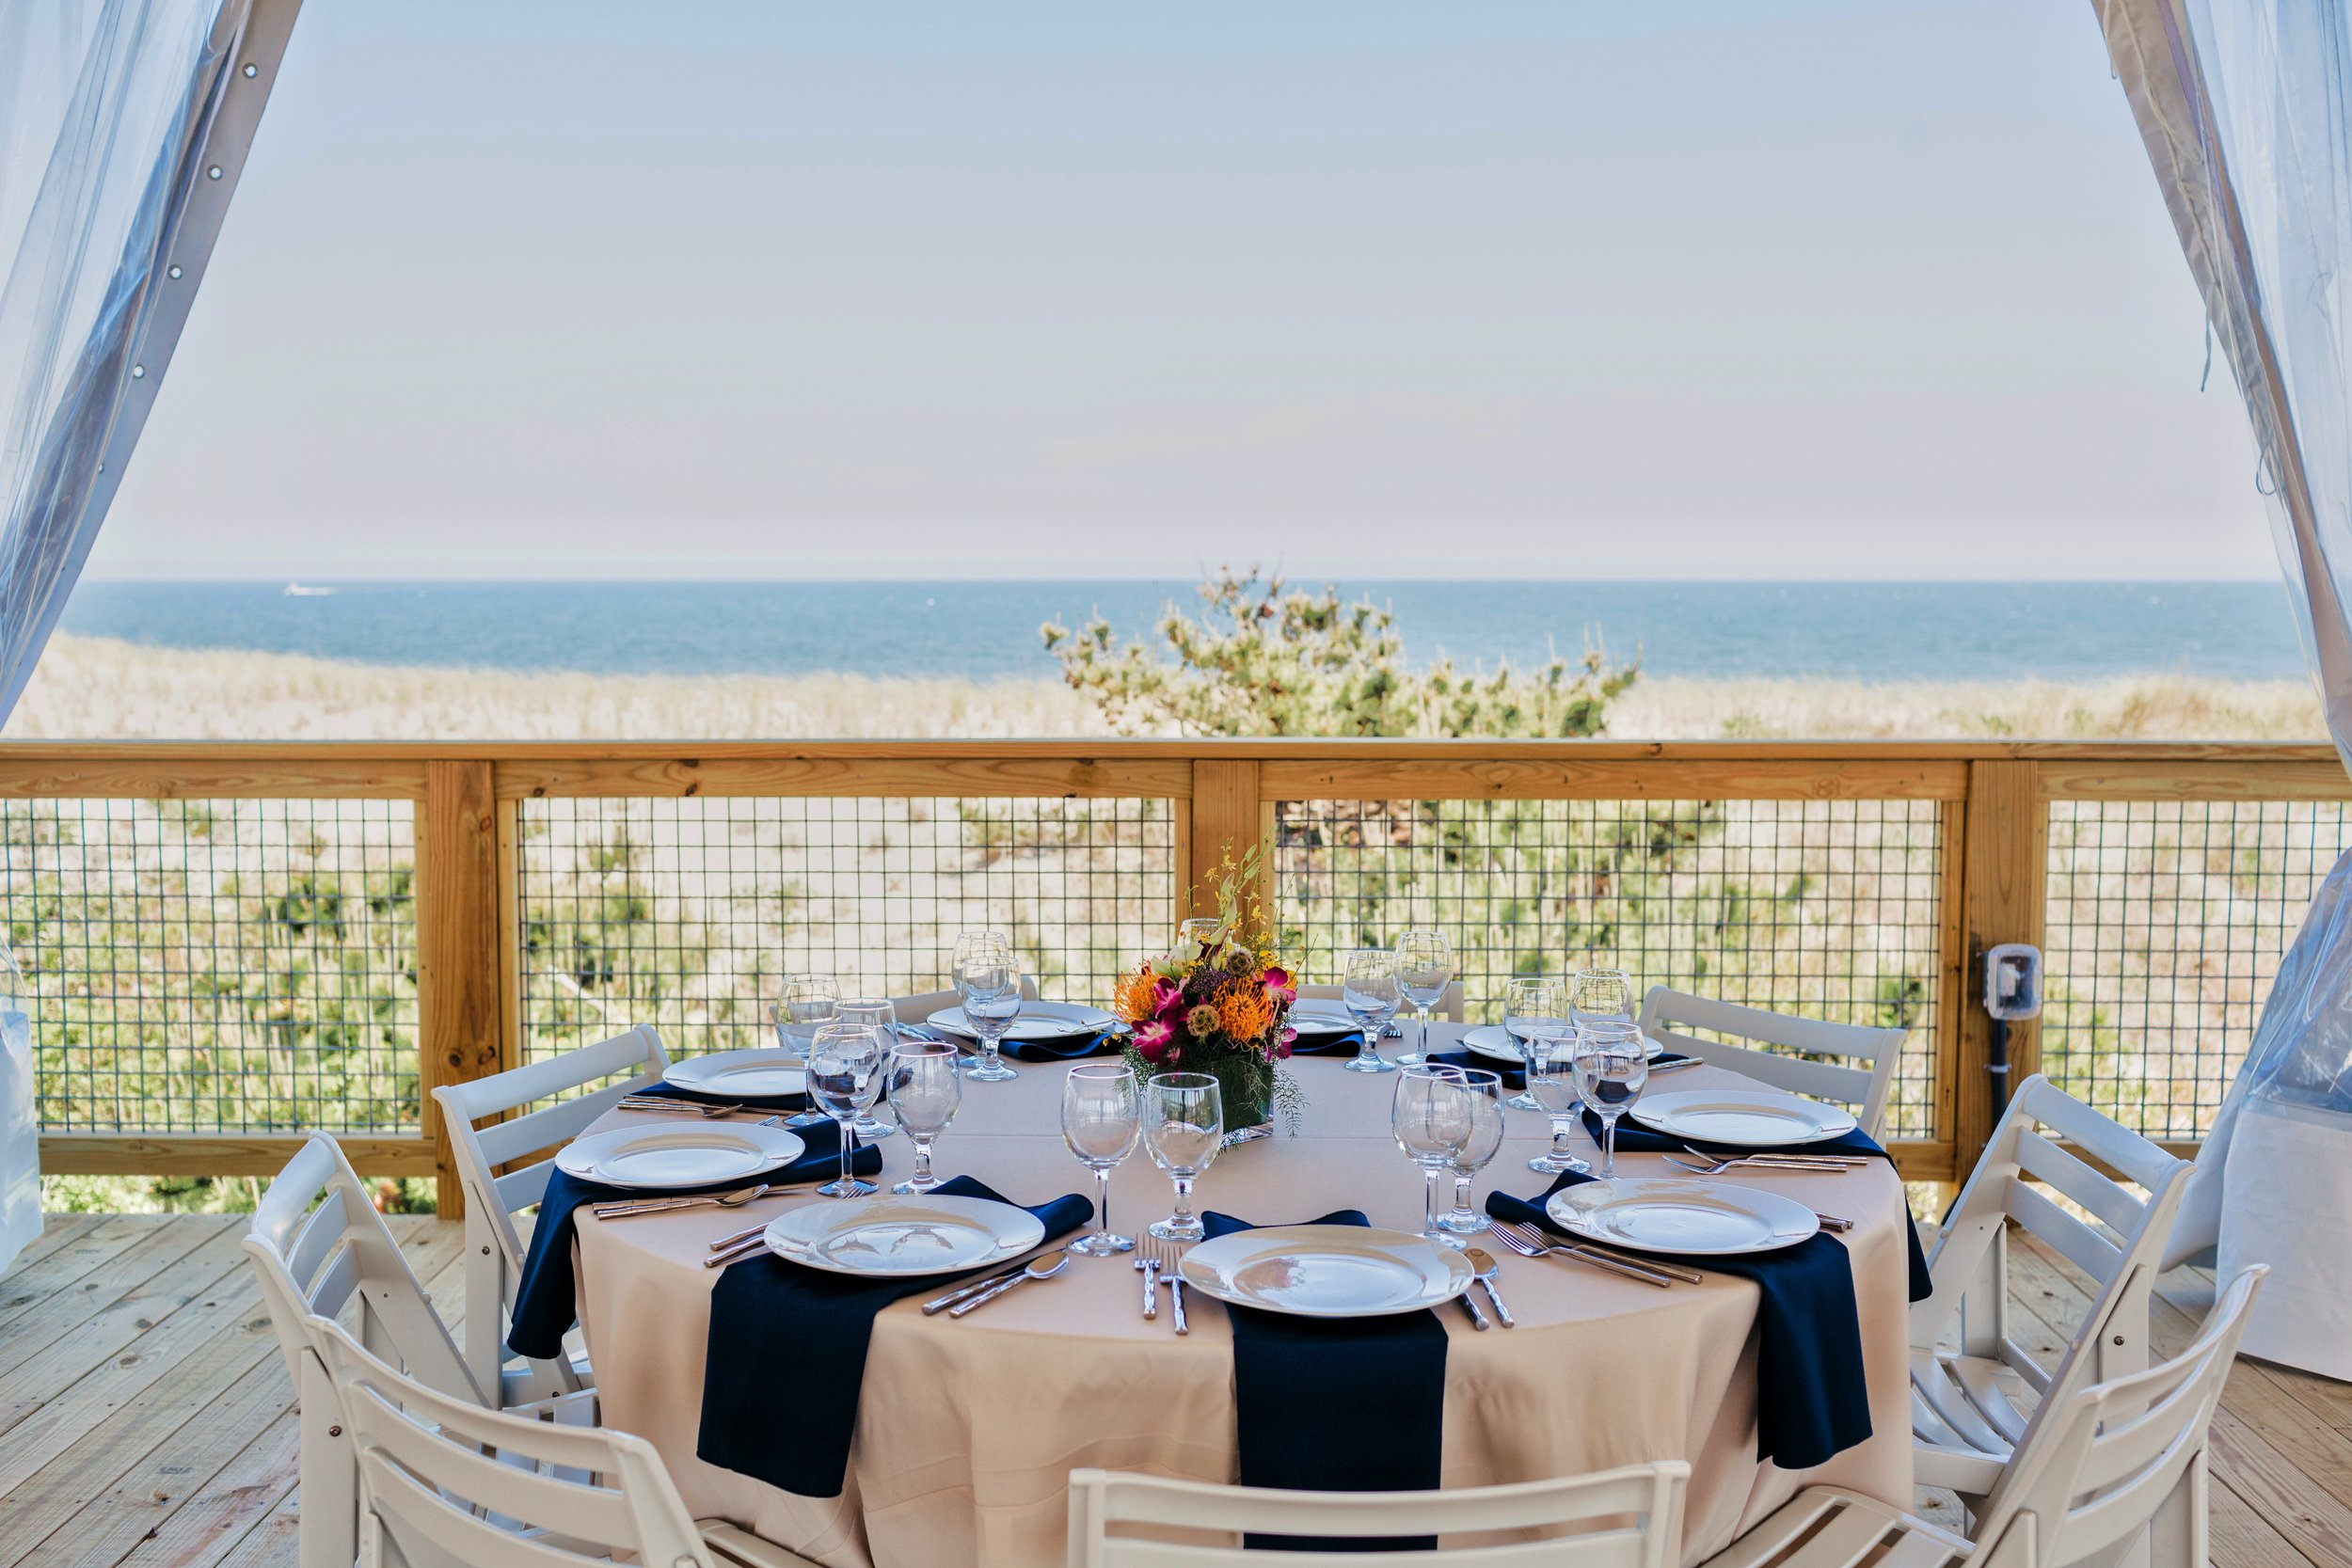 Big Chill Beach Club - Introducing Delaware Beaches newest event & wedding venue in North Bethany Beach, DE. Enjoy the Oceanfront & Bayfront views of the Big Chill Beach Club